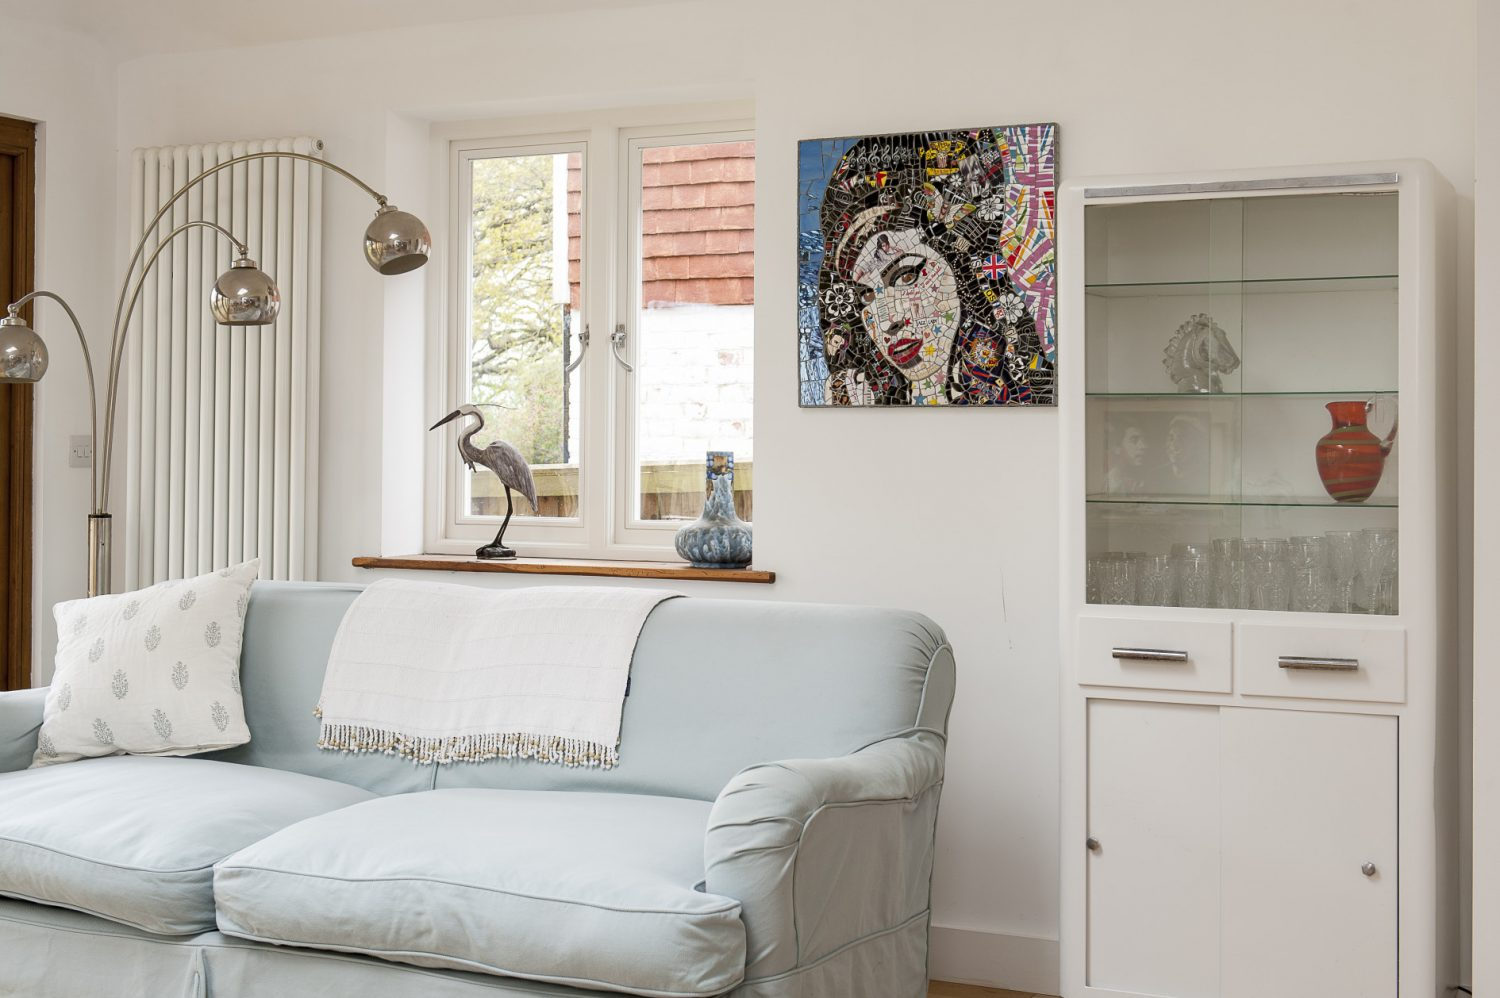 A mosaic made from fragments of crockery, called simply 'Amy' takes pride of place in the kitchen /living area